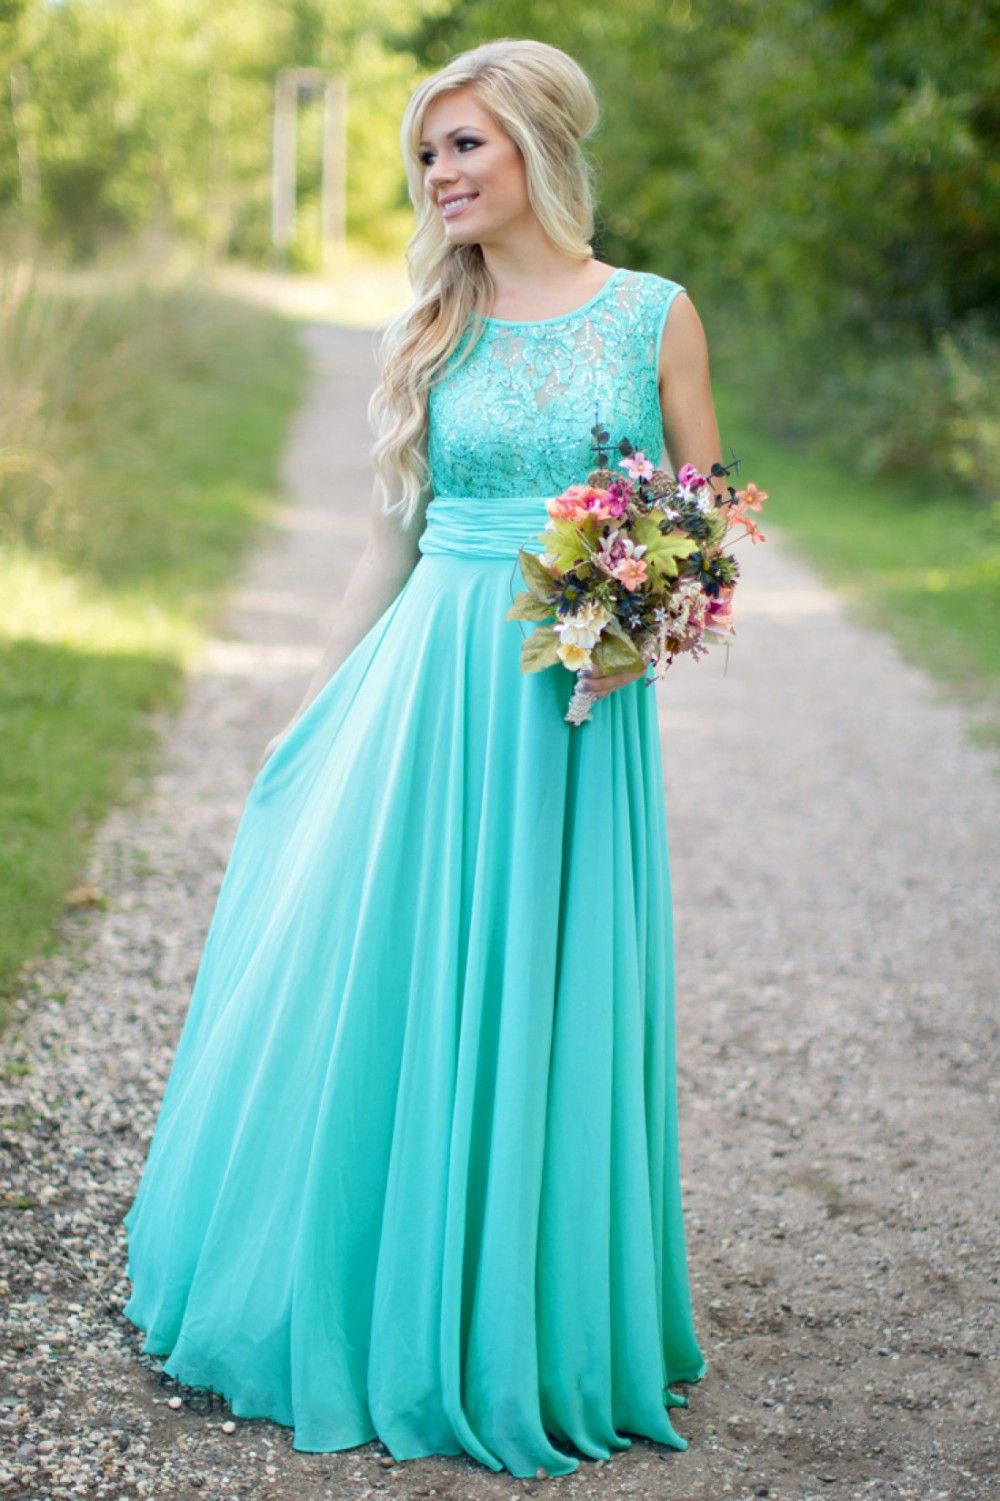 New Fashion Long Bridesmaid Dresses For Wedding Brides,Chiffon Mint ...